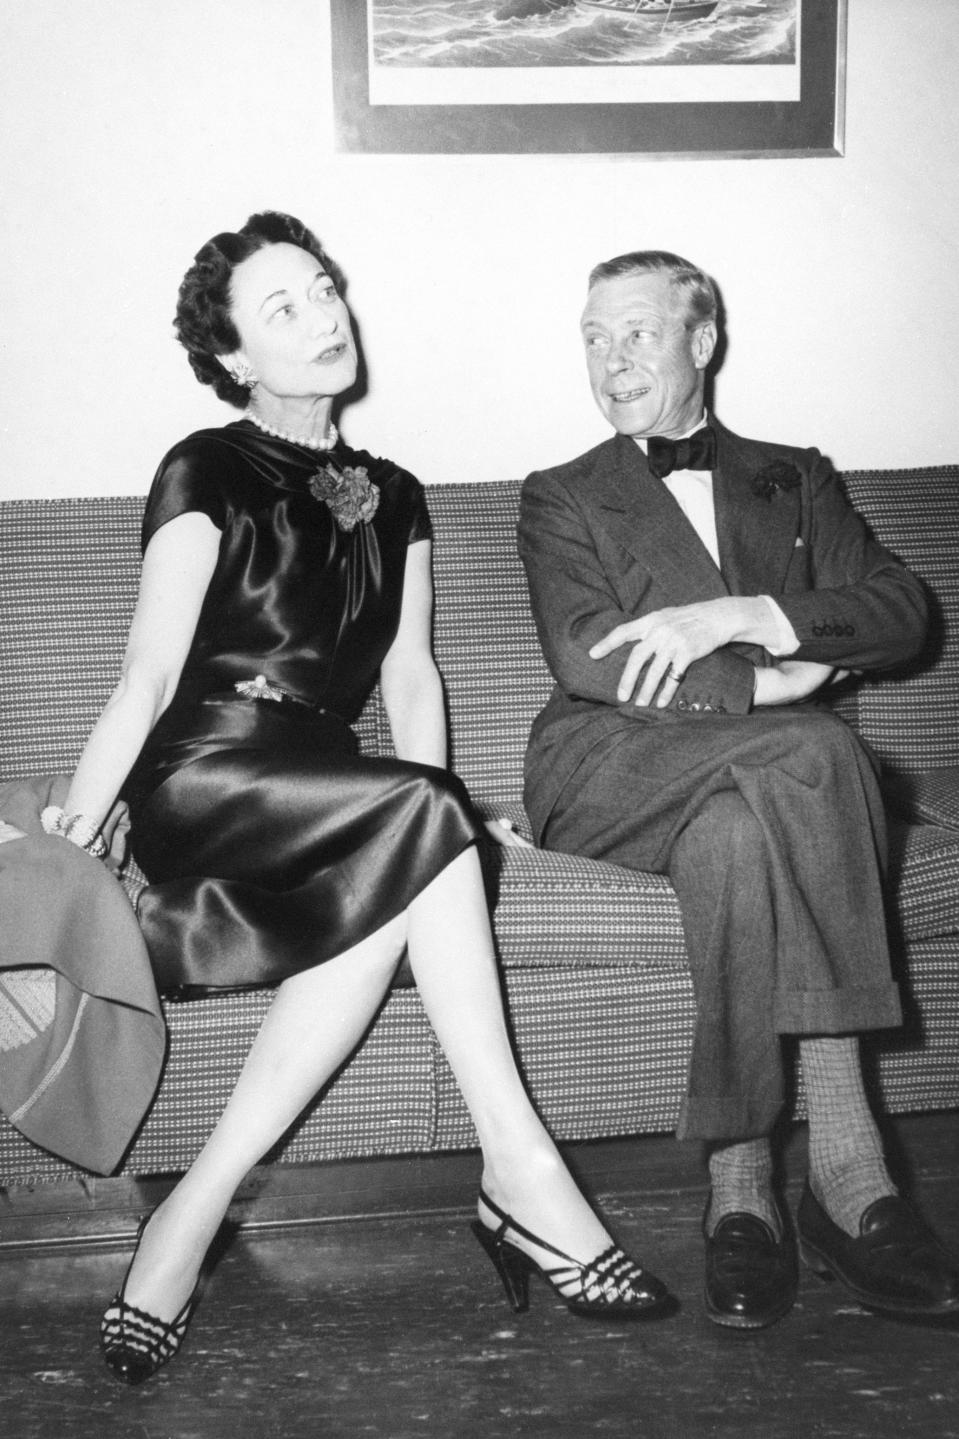 The Duke and Duchess of Windsor on  the 'United States' liner, which they boarded at Le Havre in France. They were on their way to spend Christmas with friends in America.